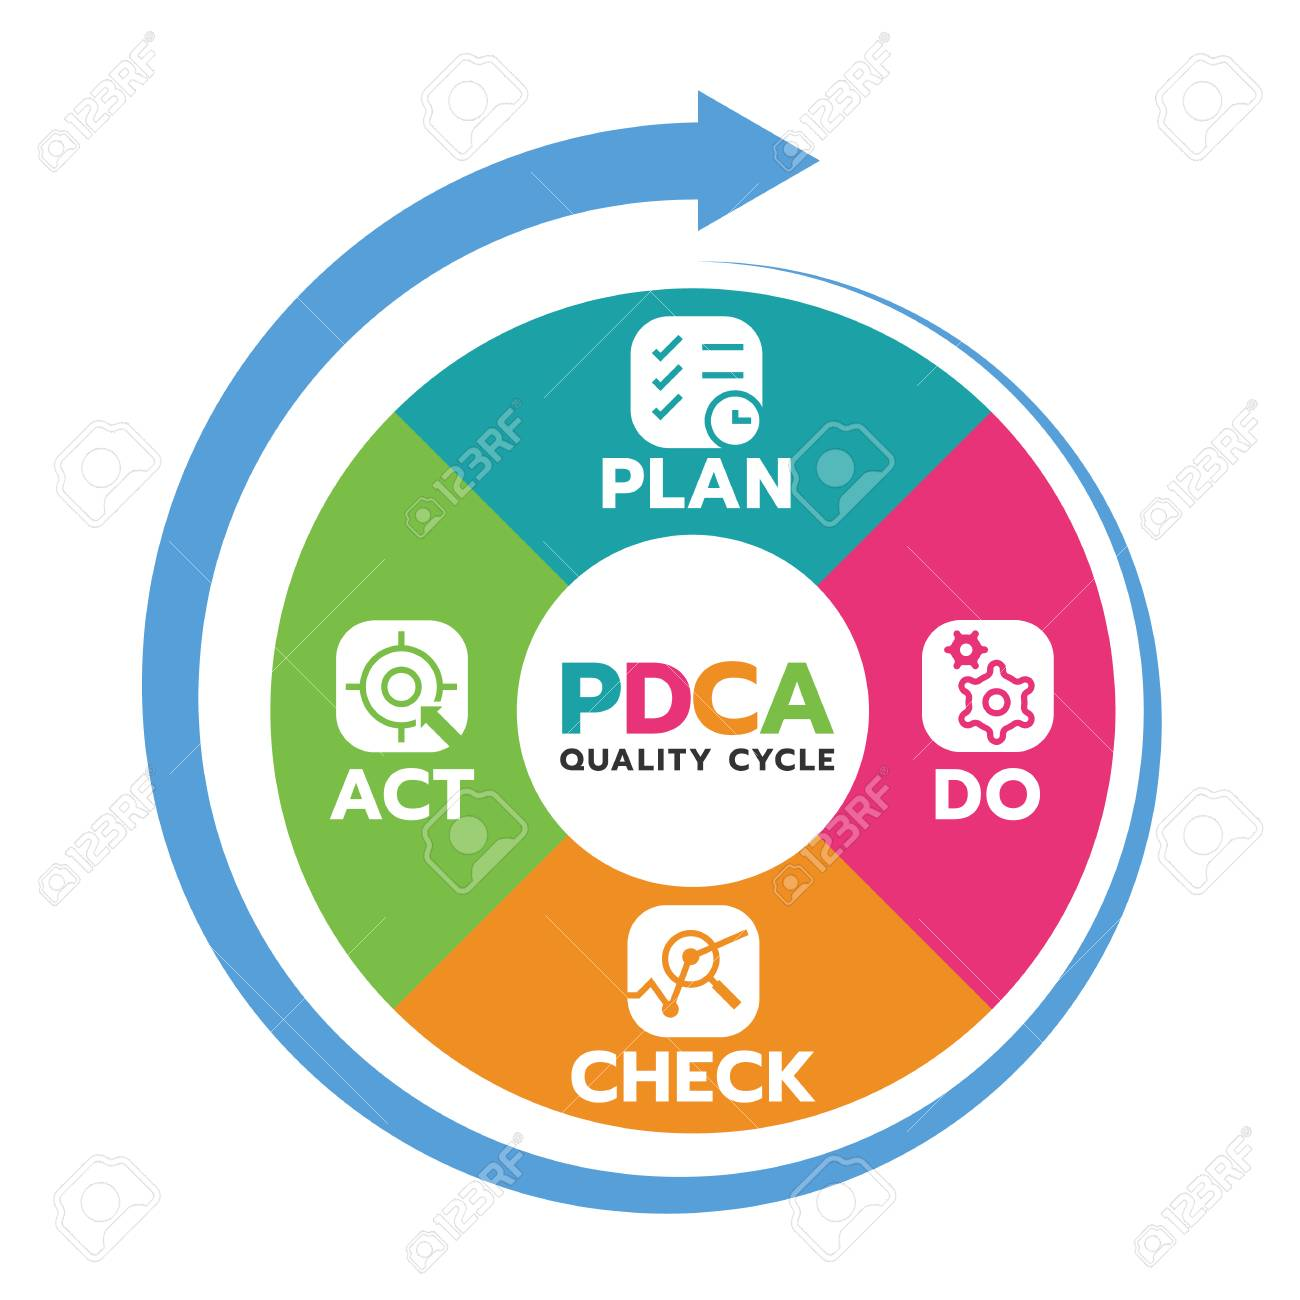 Plan Do Check Act (PDCA quality cycle) in Circle diagram and circle arrow Vector illustration. - 118045661